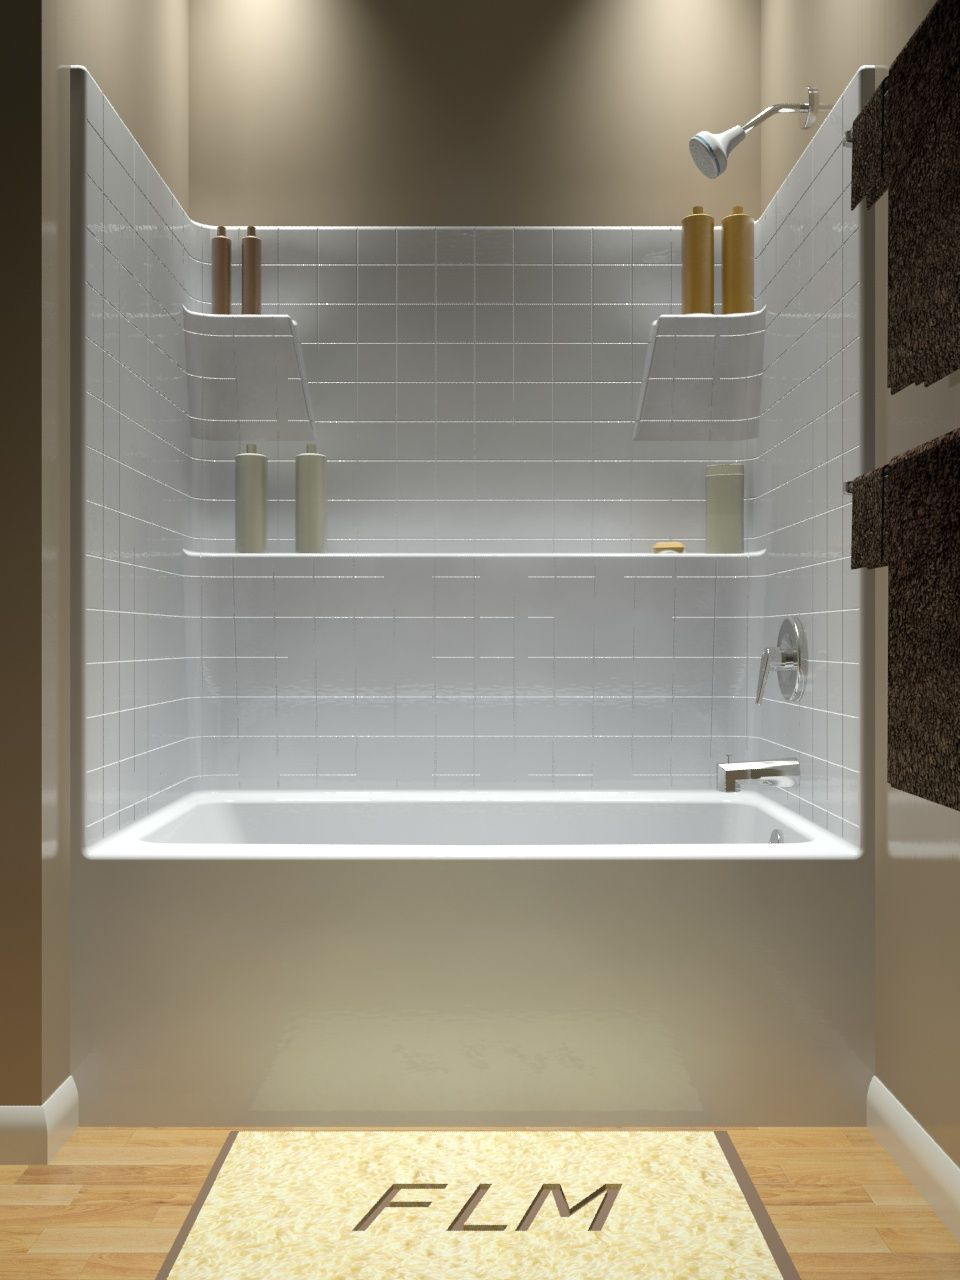 tub white the delta bathtub x bath depot classic curve standard shower combo combos fiberglass bathtubs b home n in fit